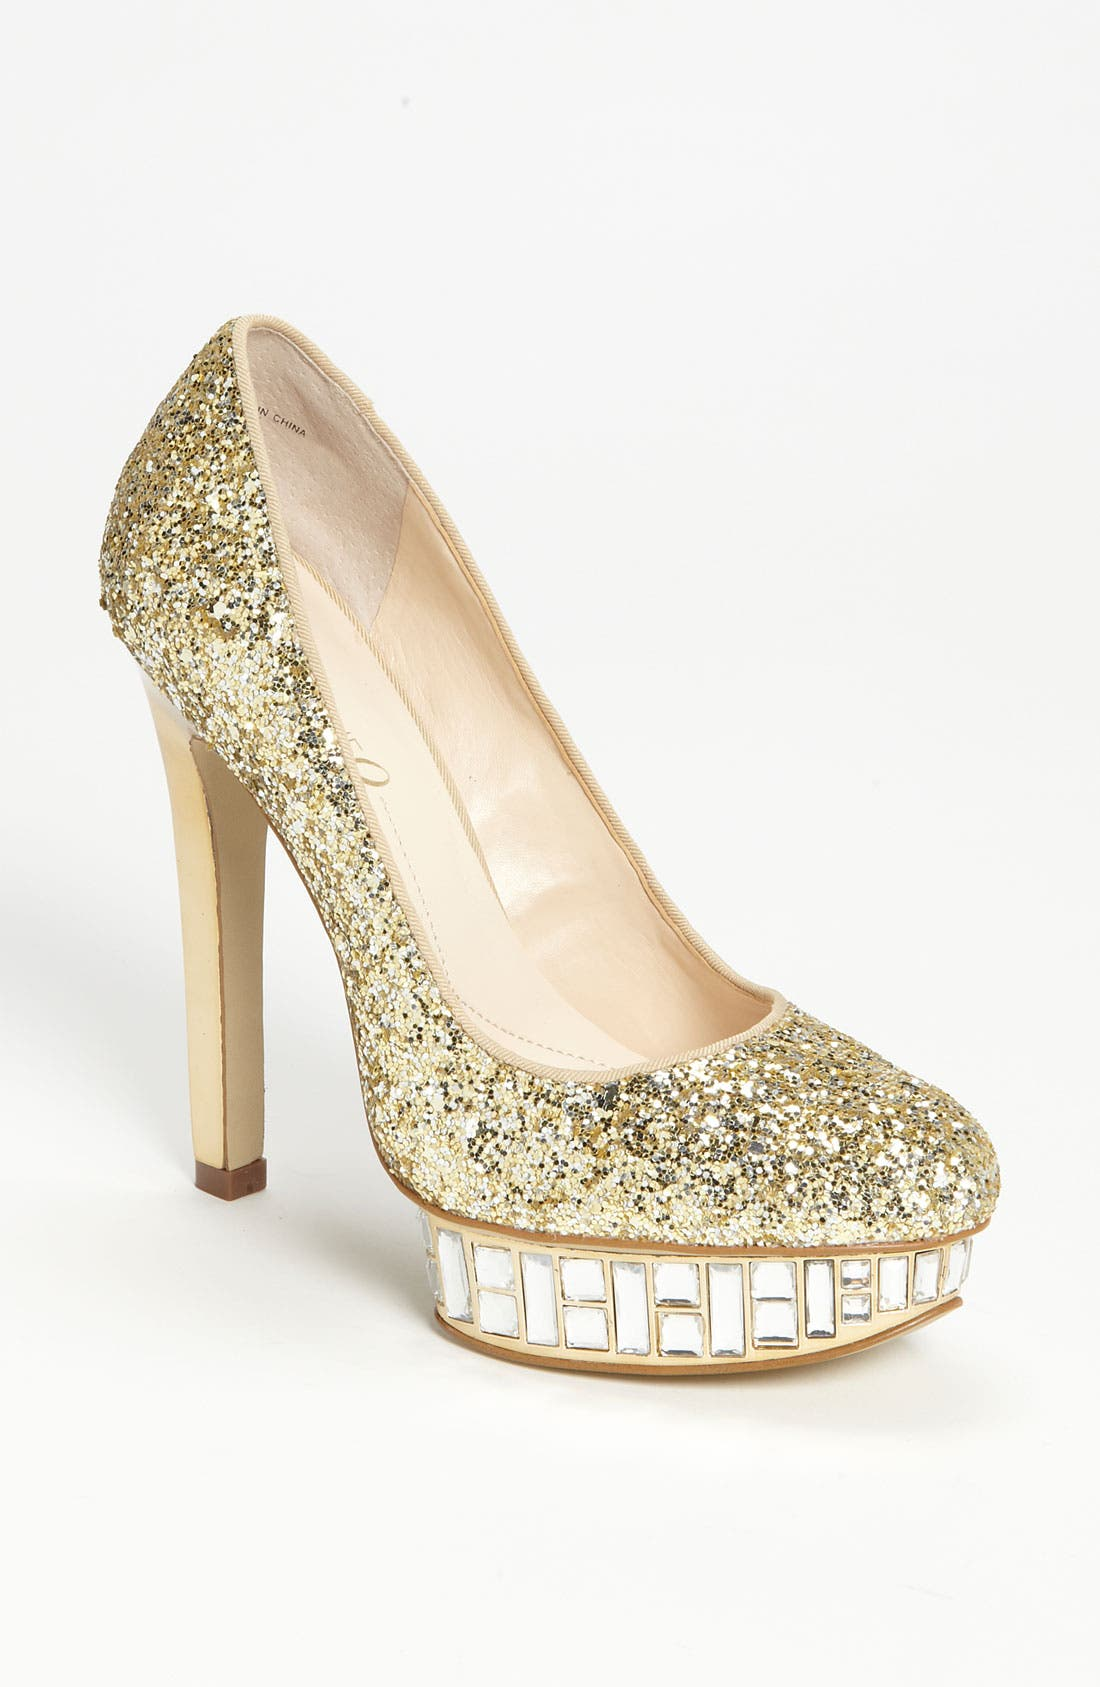 Main Image - Boutique 9 'Lidia' Pump